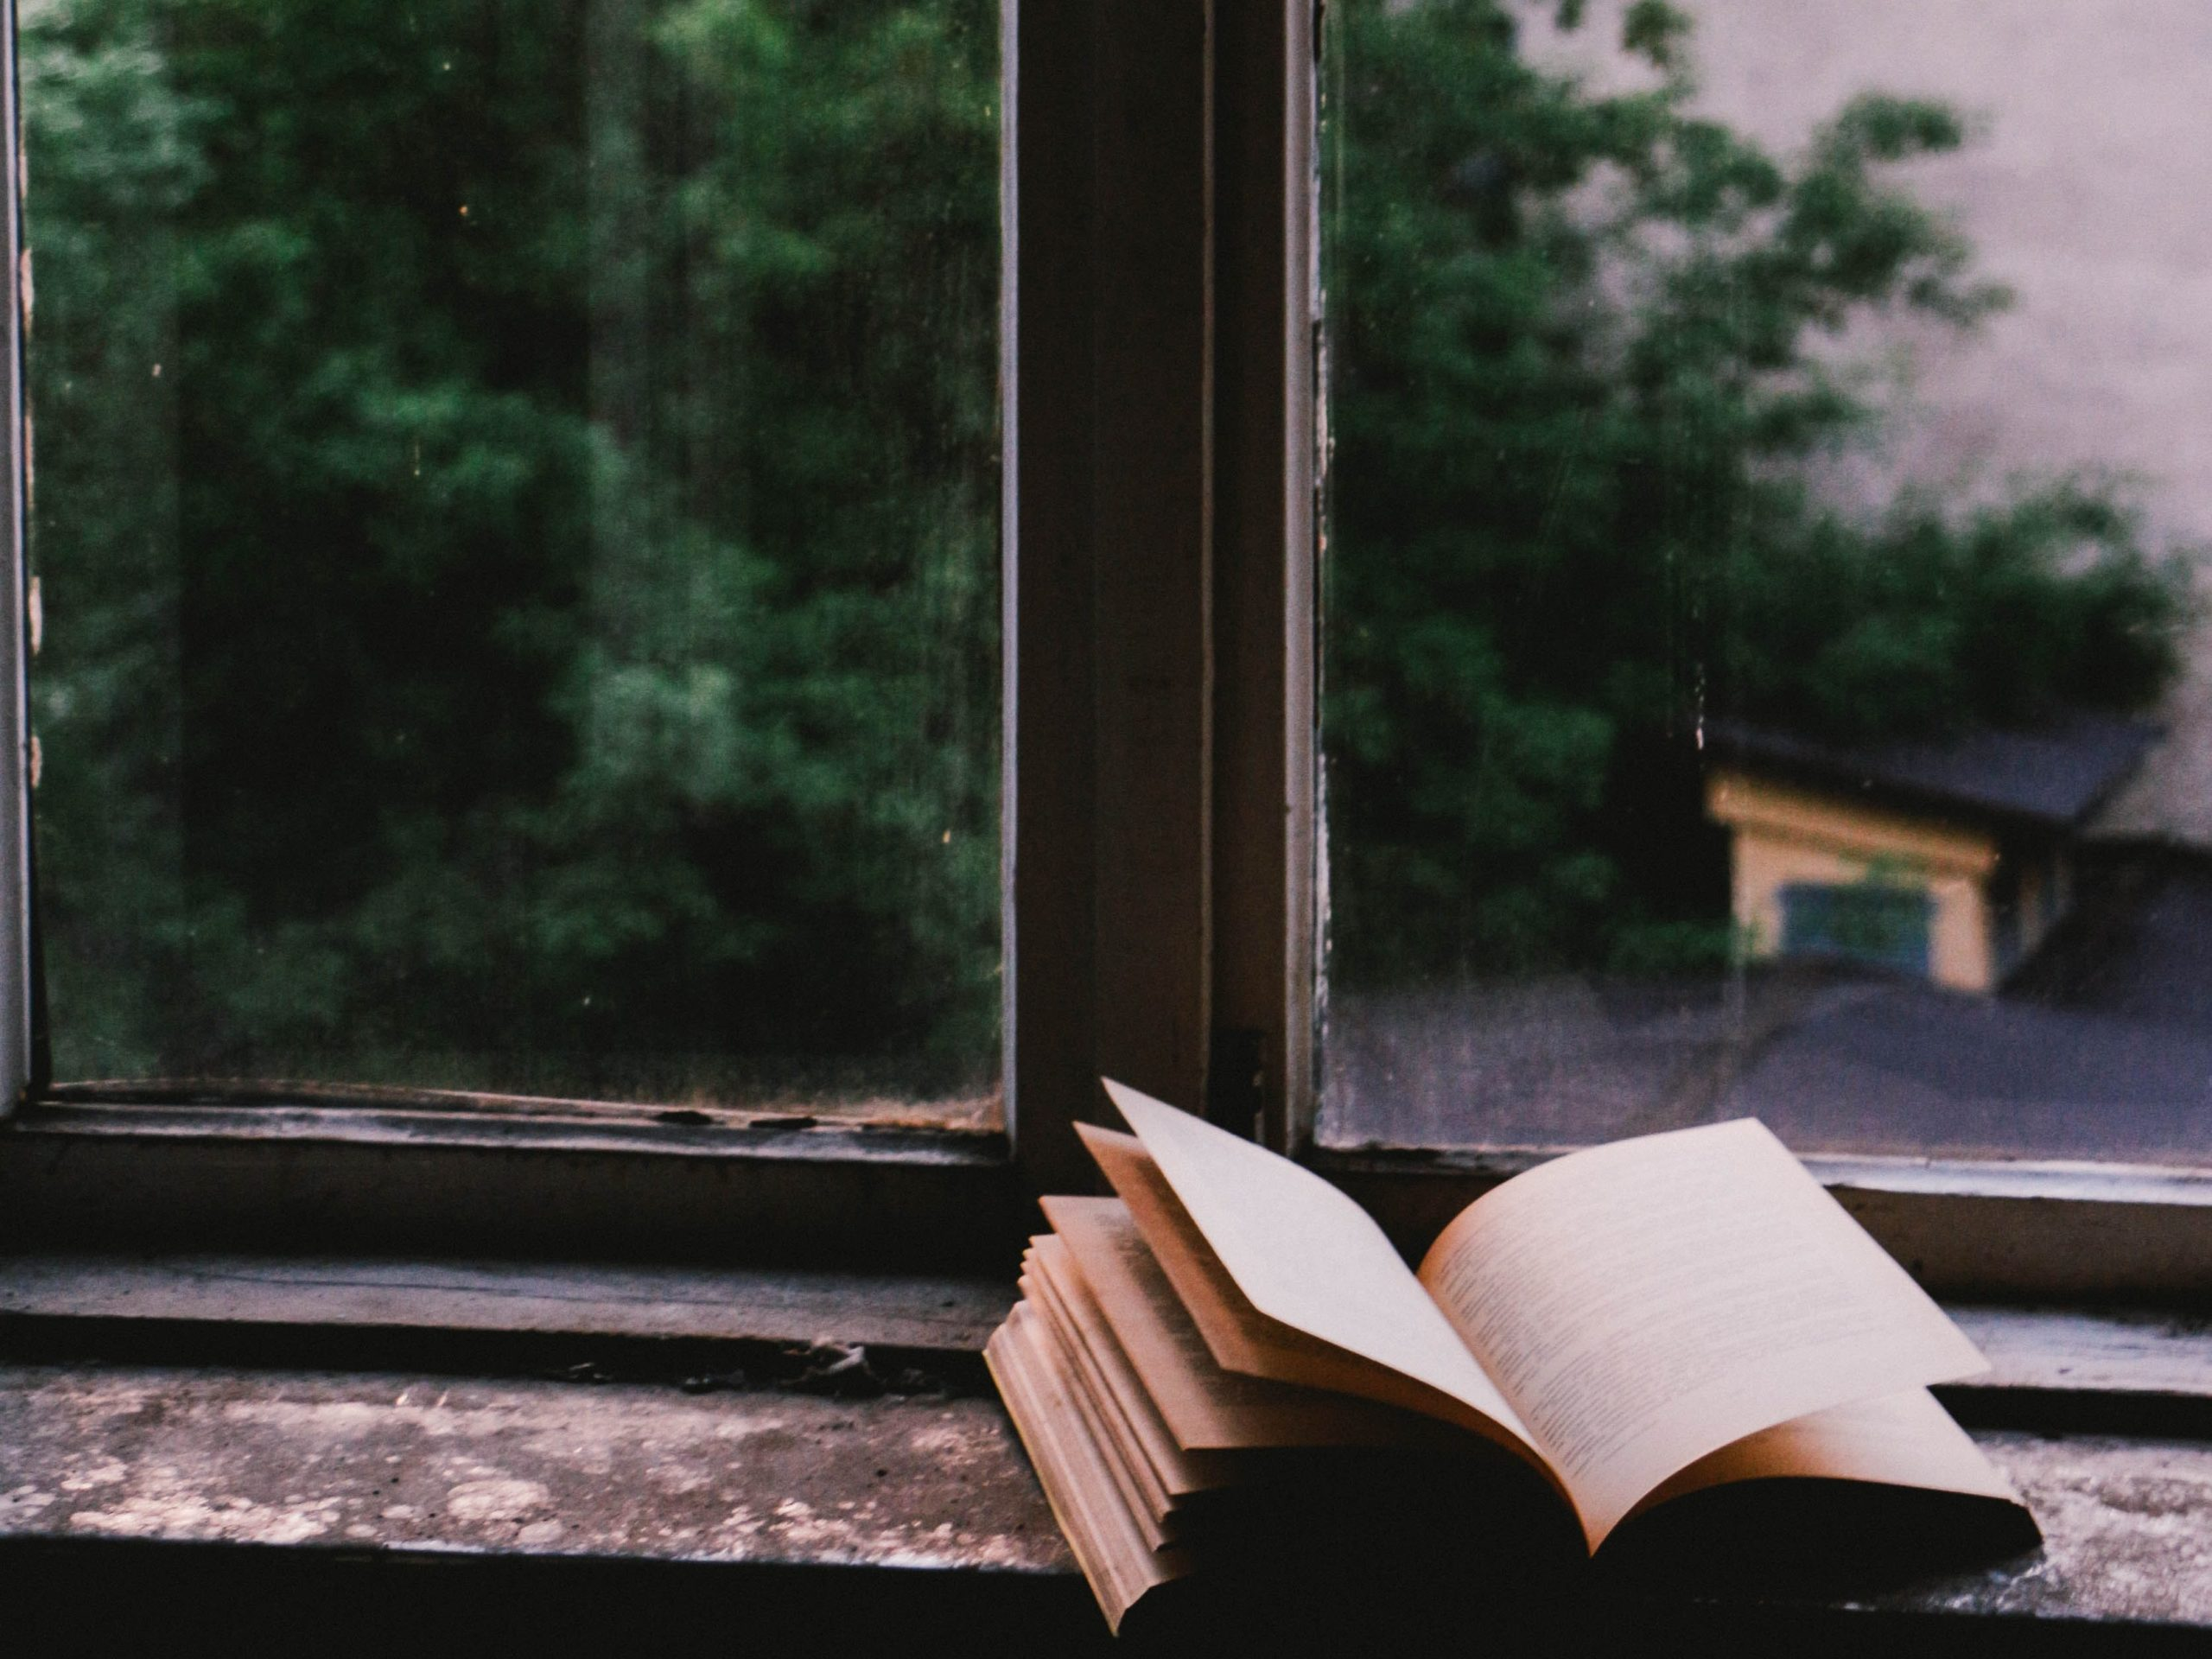 An old book is open on a window sill